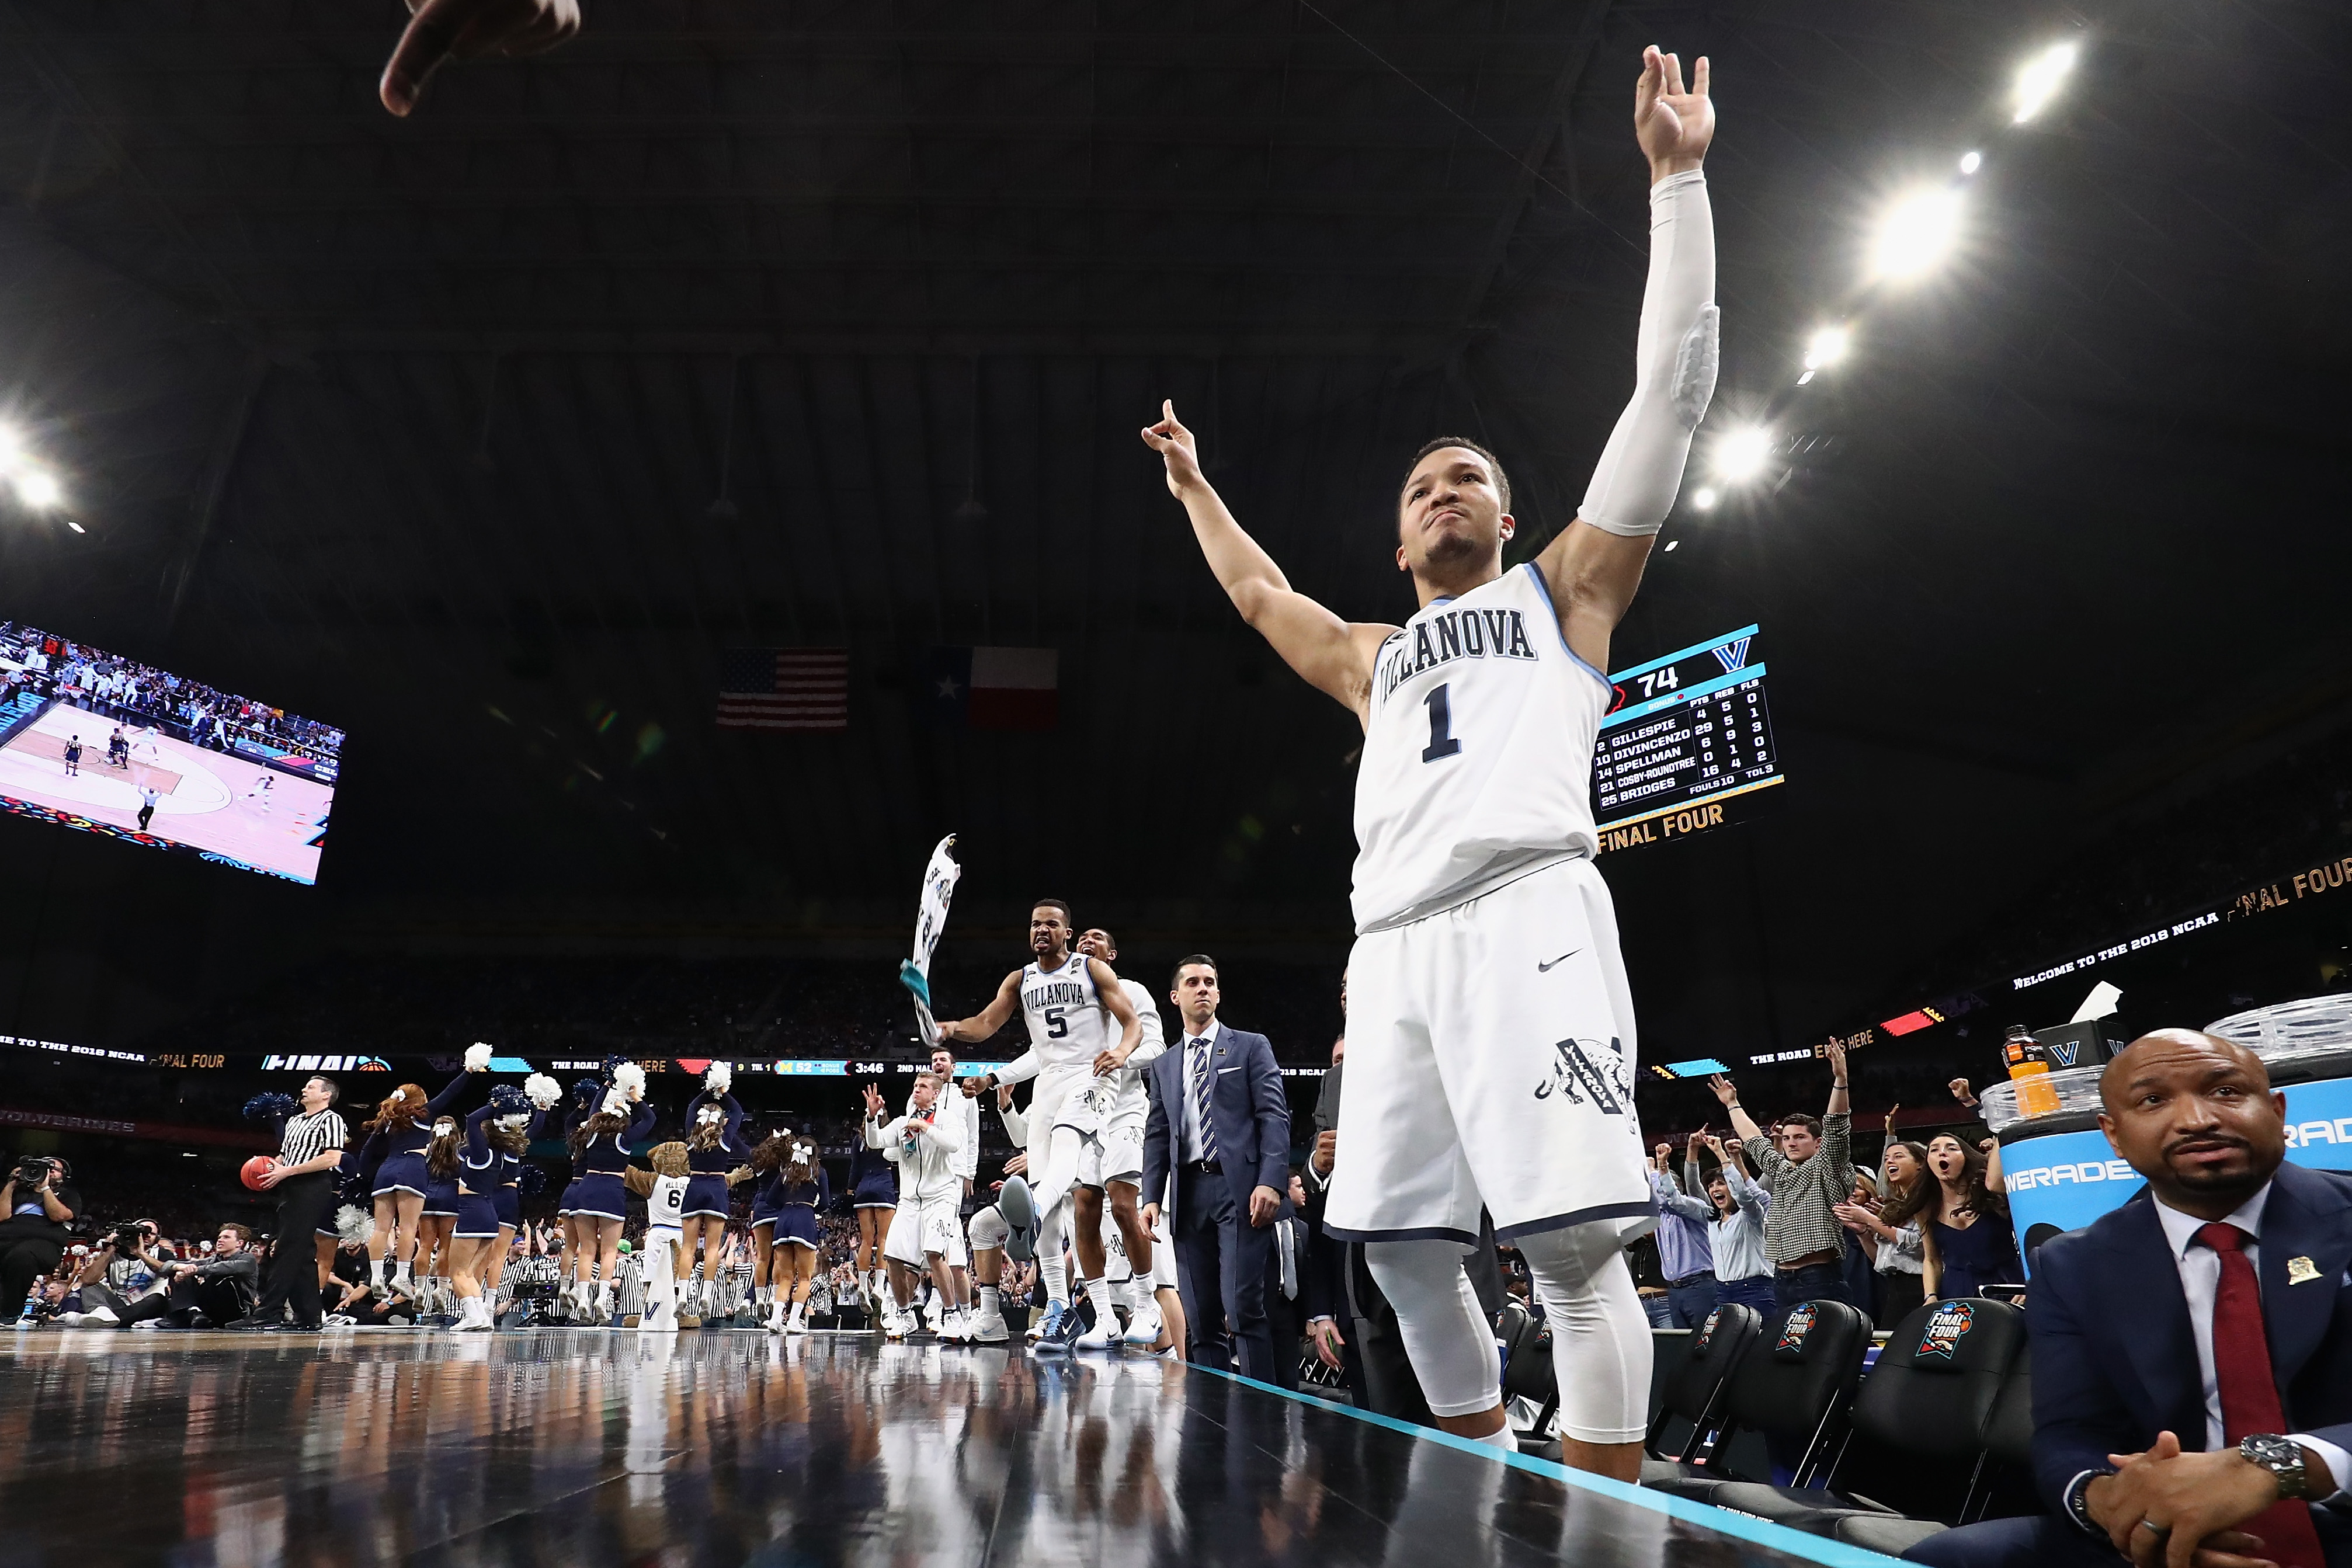 Jalen Brunson was an NCAA star who can make an immediate impact with the Mavericks